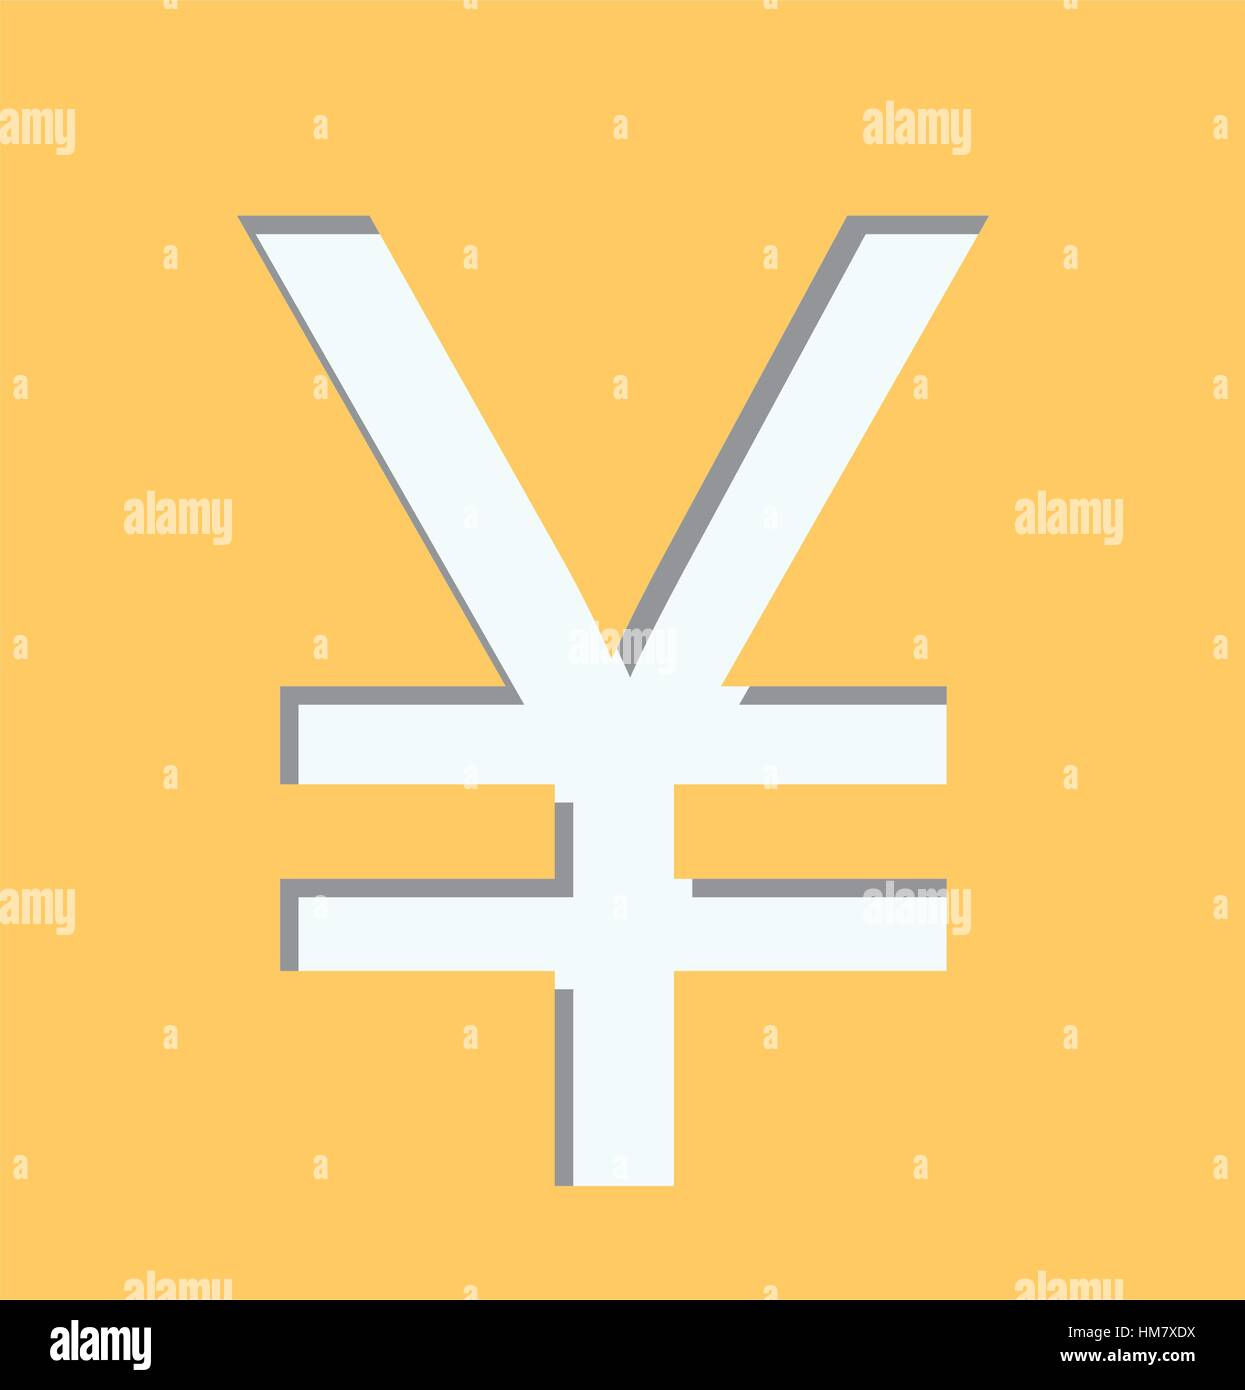 Cny currency symbol images symbol and sign ideas yellow square shape with currency symbol of china vector yellow square shape with currency symbol of biocorpaavc Image collections